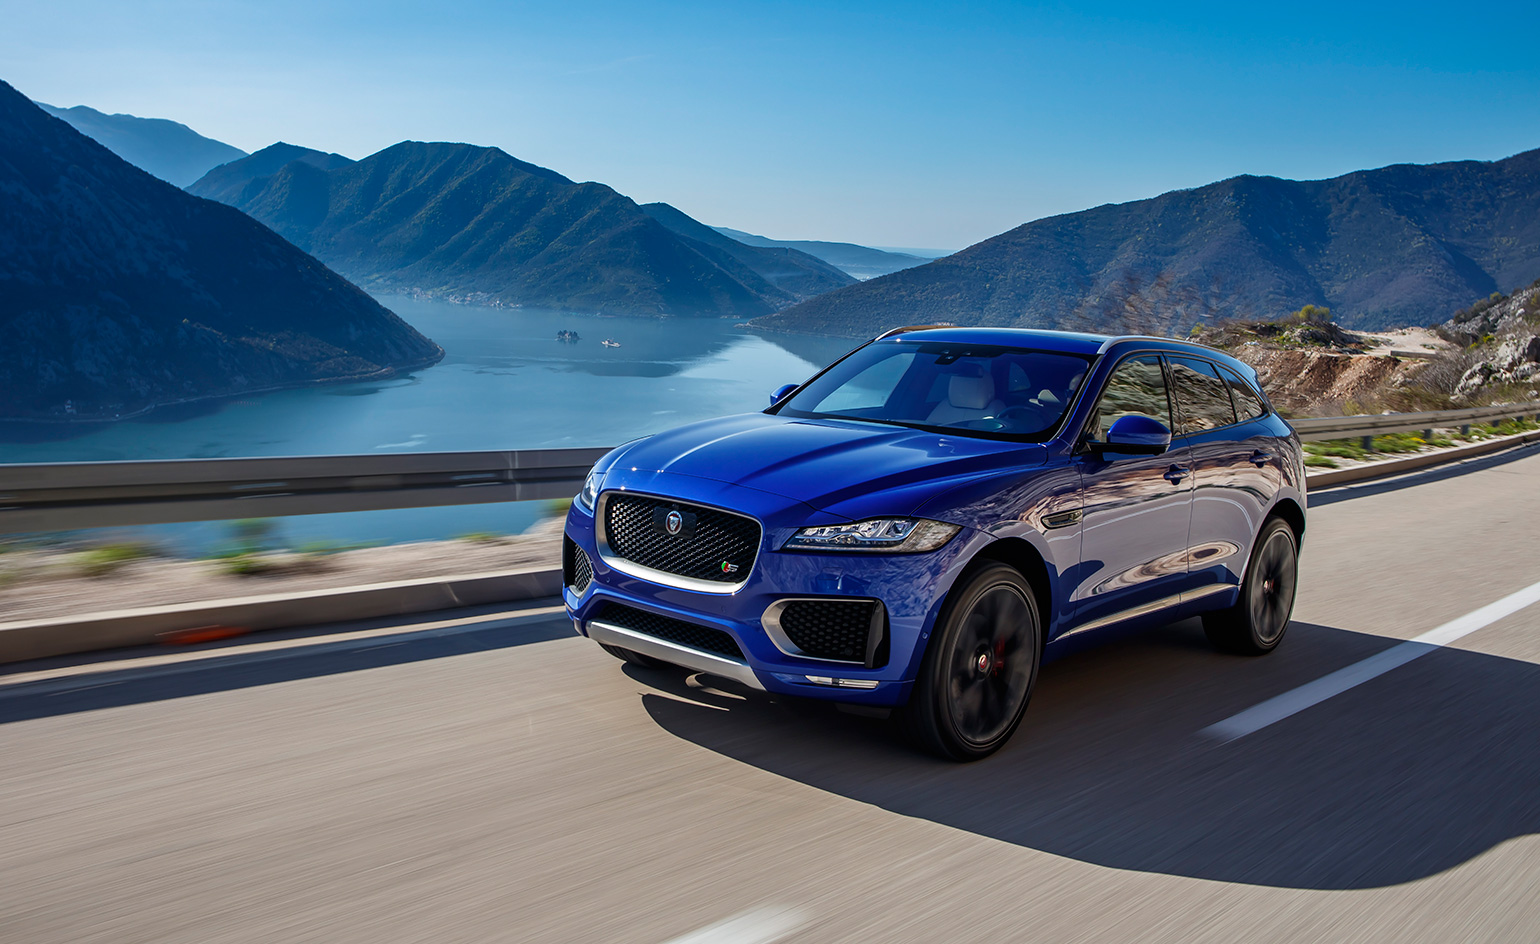 introducing the jaguar f pace a sporty suv wallpaper. Black Bedroom Furniture Sets. Home Design Ideas